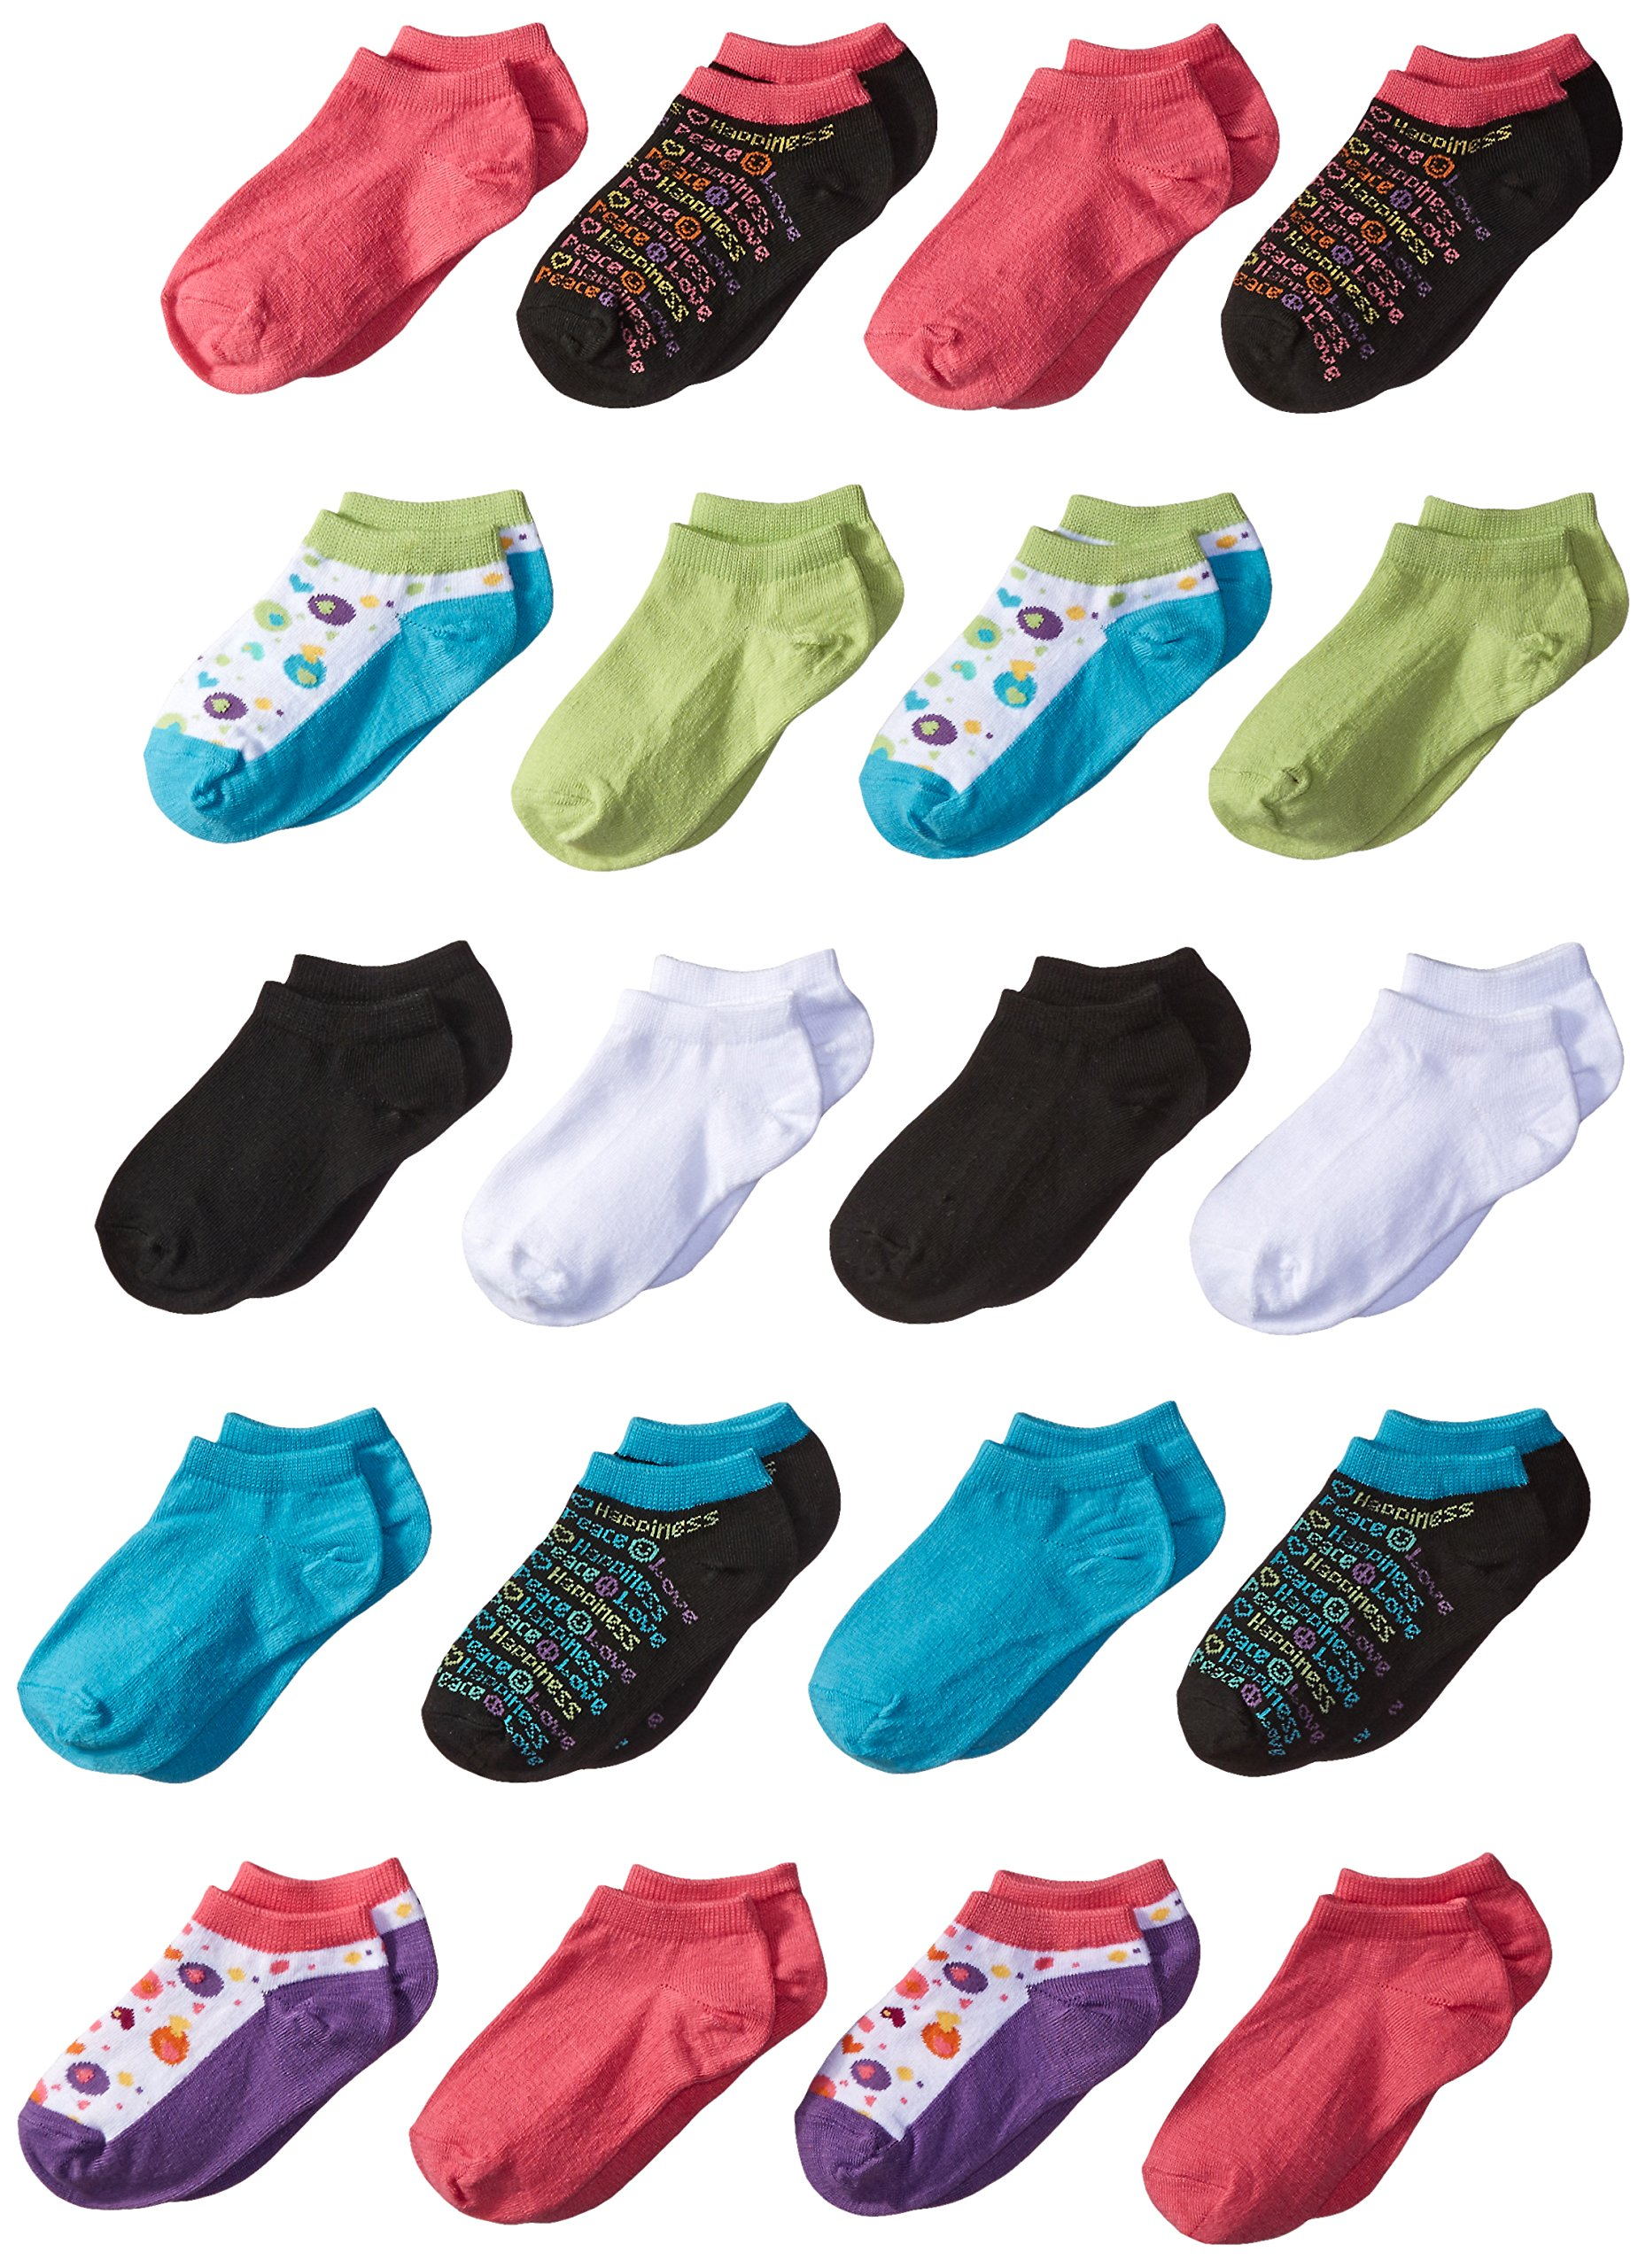 Fruit of the Loom Girl's 20 Pack Dotted Heart and Peace Love Happy Low Cut Socks, Fash, Shoe: 6-10.5